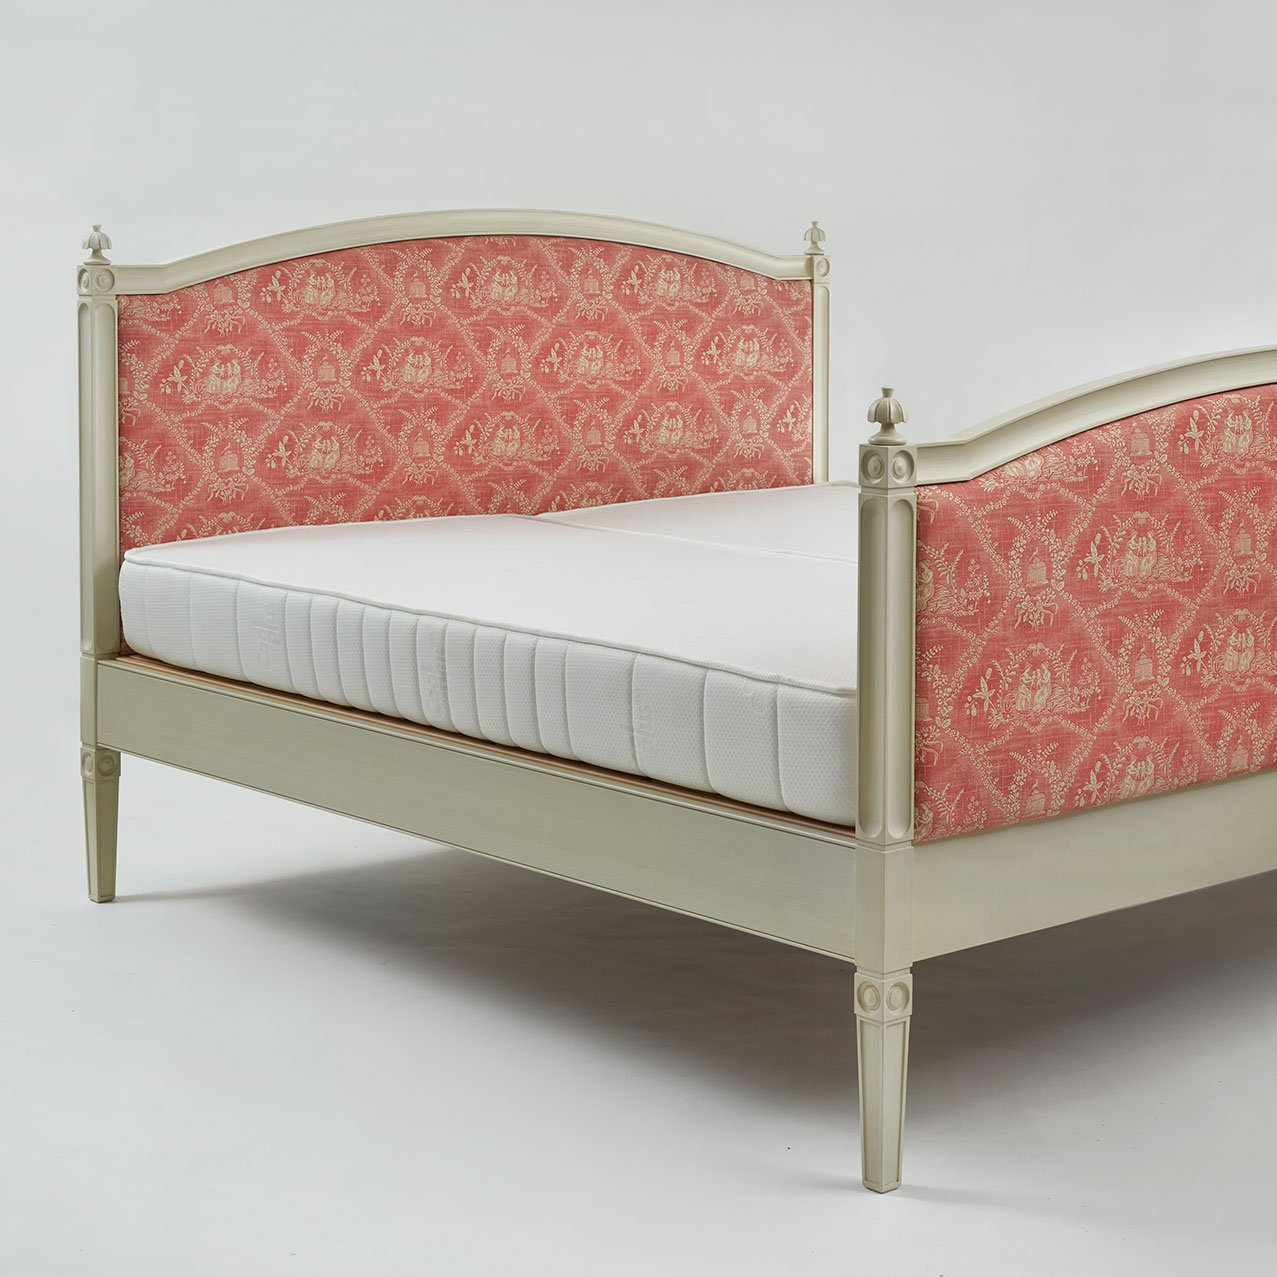 Bespoke Karelian Adjustable Bed